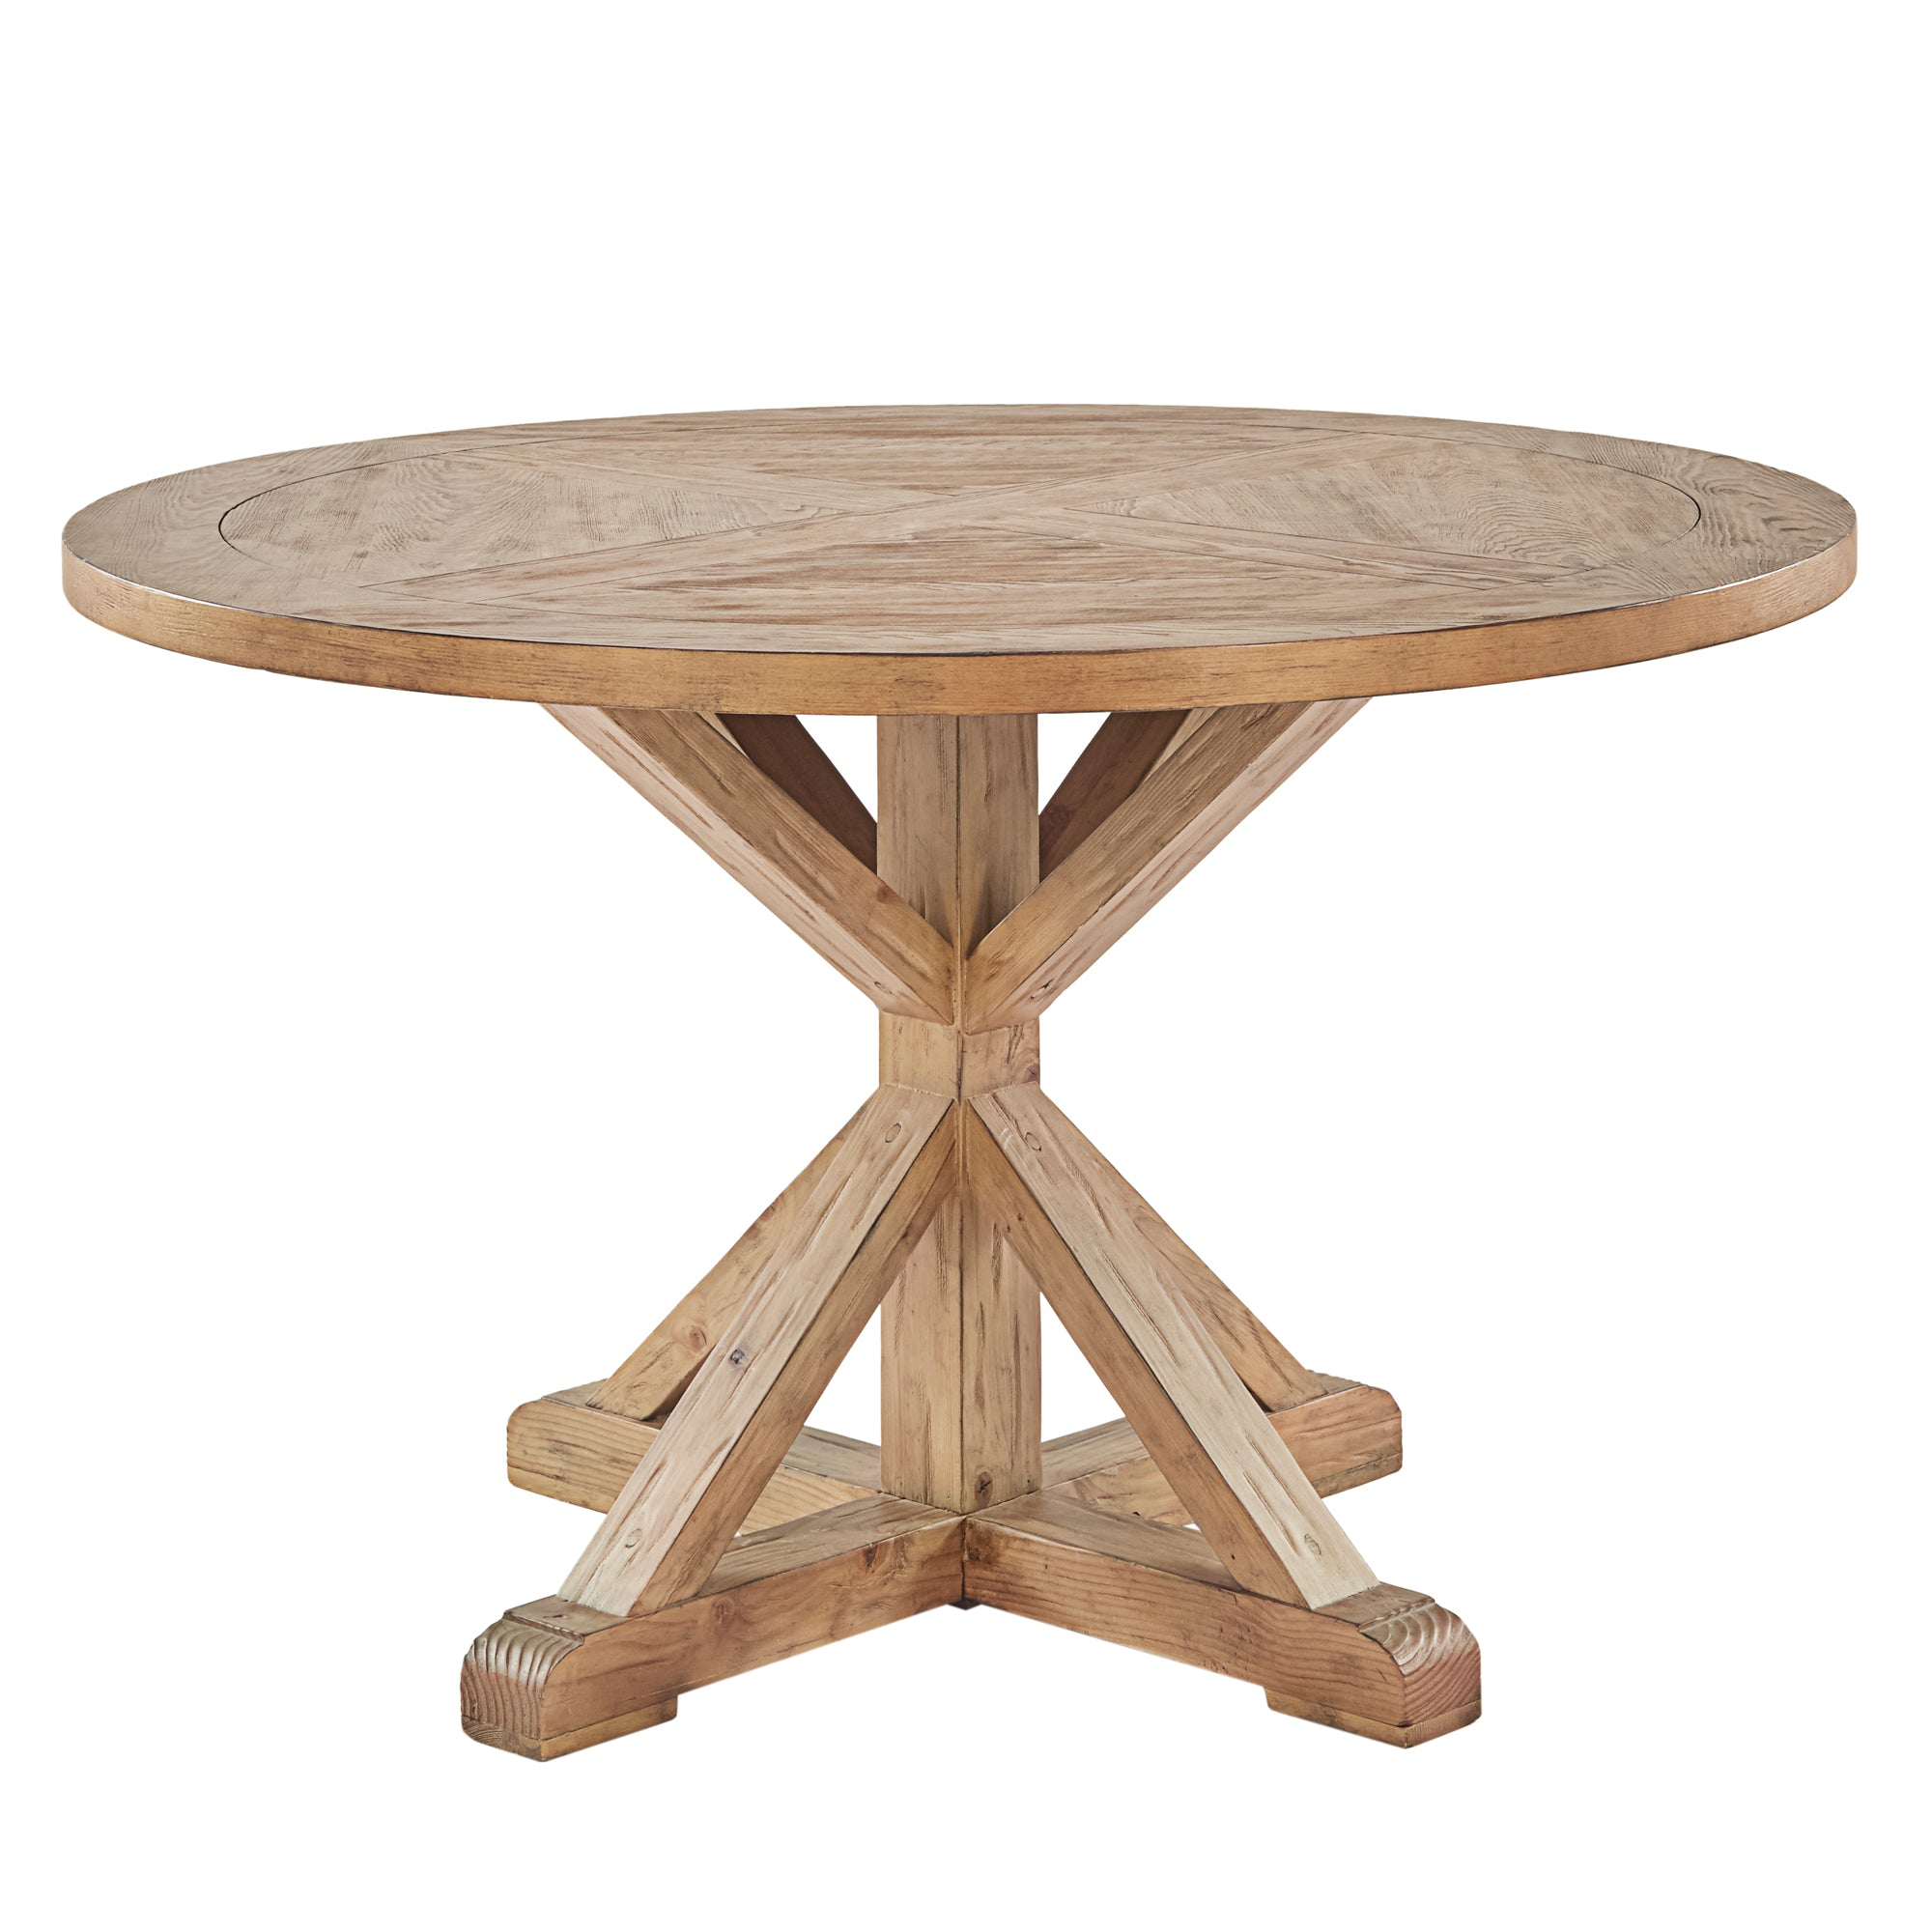 X-Base 48-inch Round Dining Table